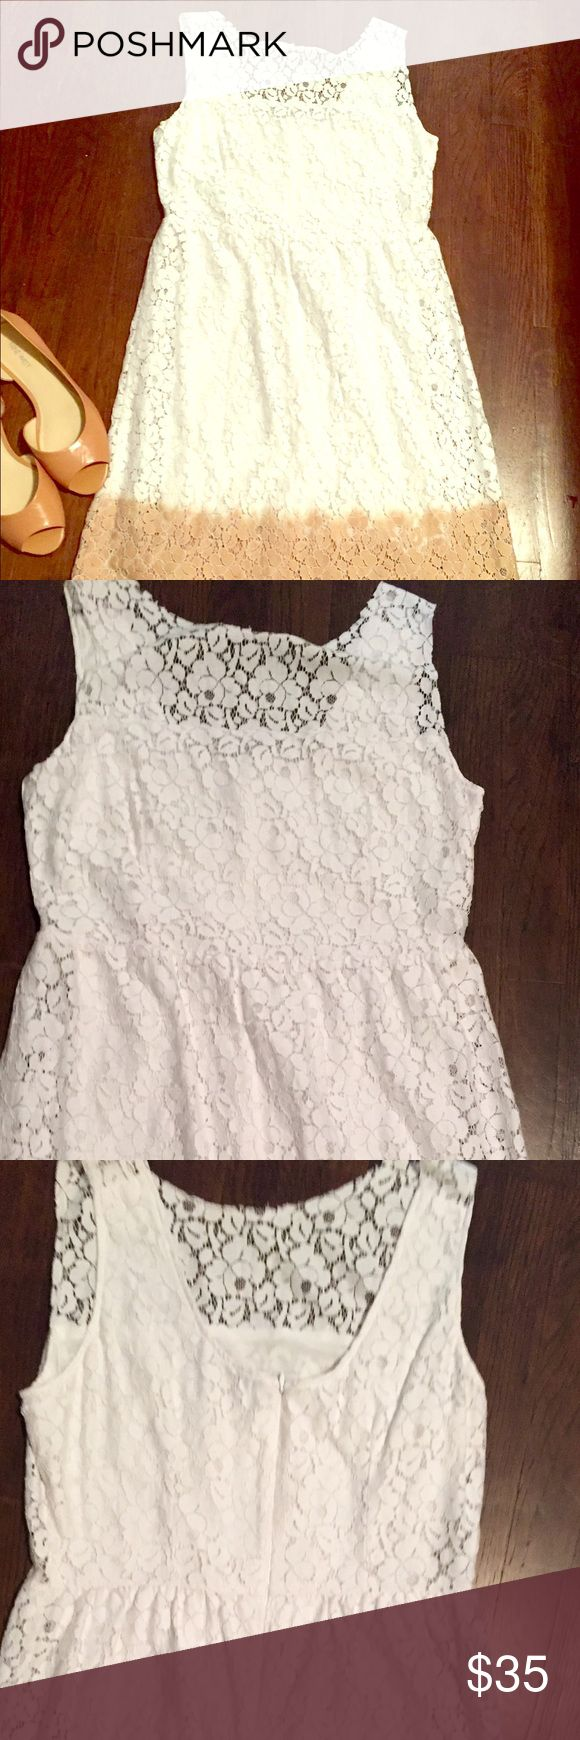 Beautiful white and tan lace dress! Very light weight and soft lace dress. Lace illusion top. White with tan on the bottom. Can be dressed up or down. Only worn once! Velvet Dresses Midi